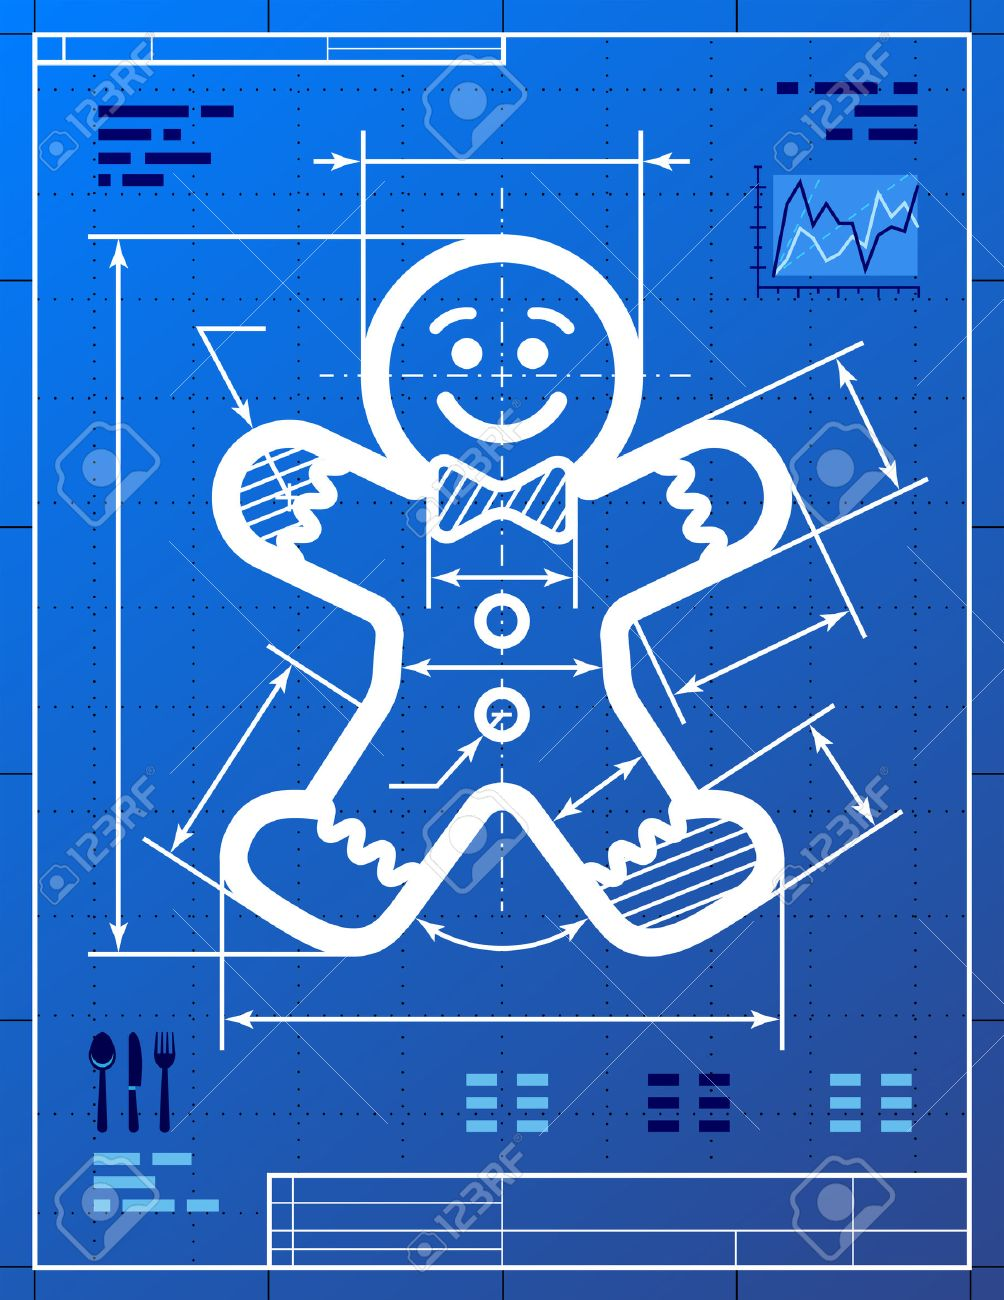 Gingerbread man symbol like blueprint drawing drafting of gingerbread man symbol like blueprint drawing drafting of gingerbread man sign on blueprint paper vector image malvernweather Gallery